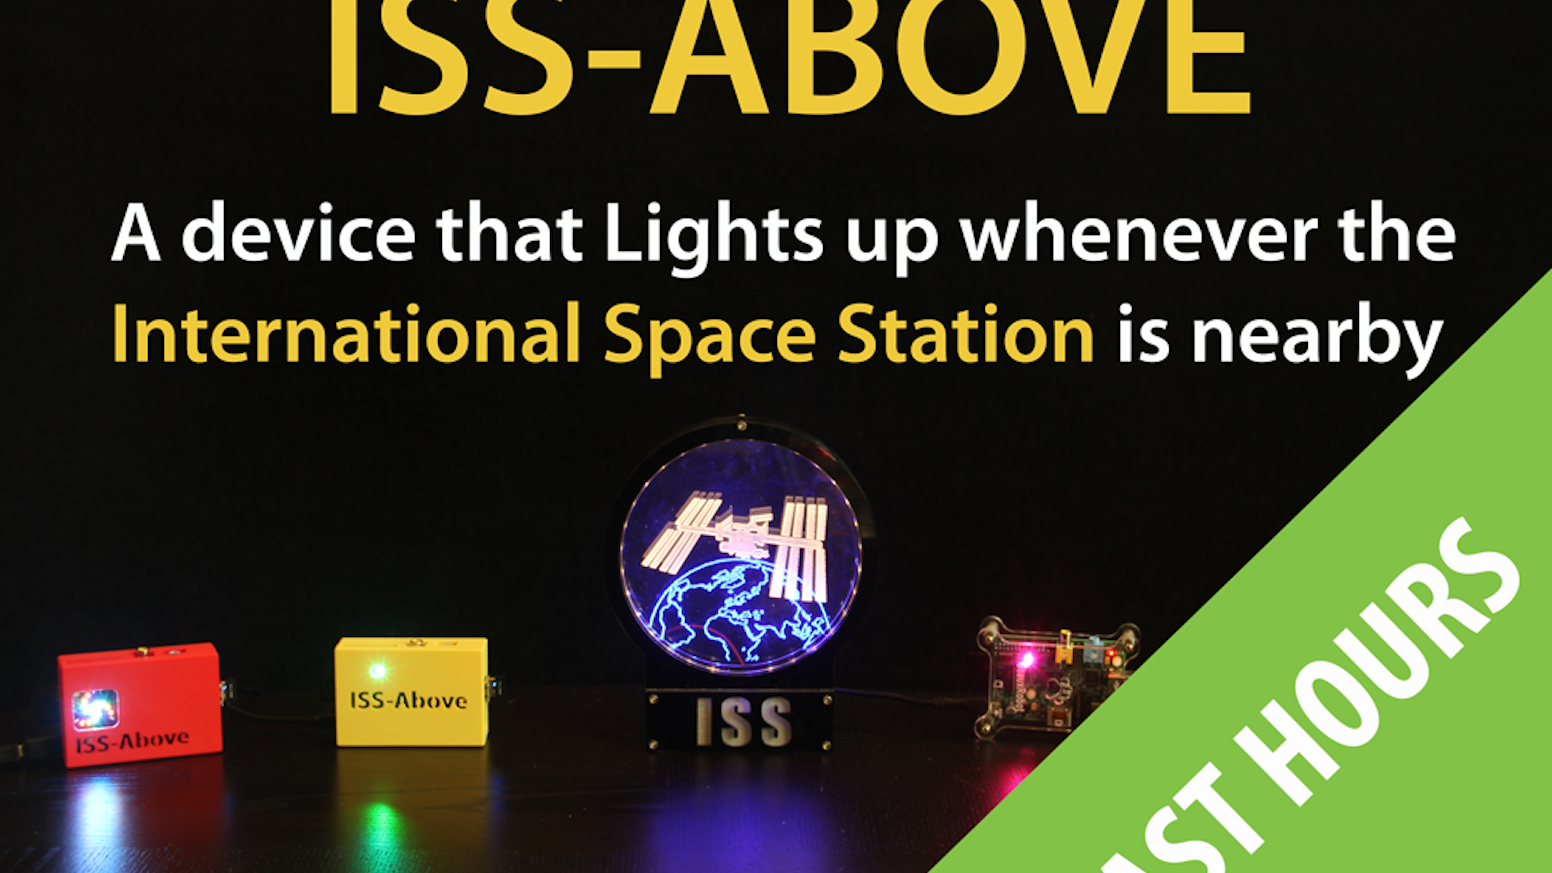 A device that lights up whenever the International Space Station is nearby (that happens more often than you might expect)